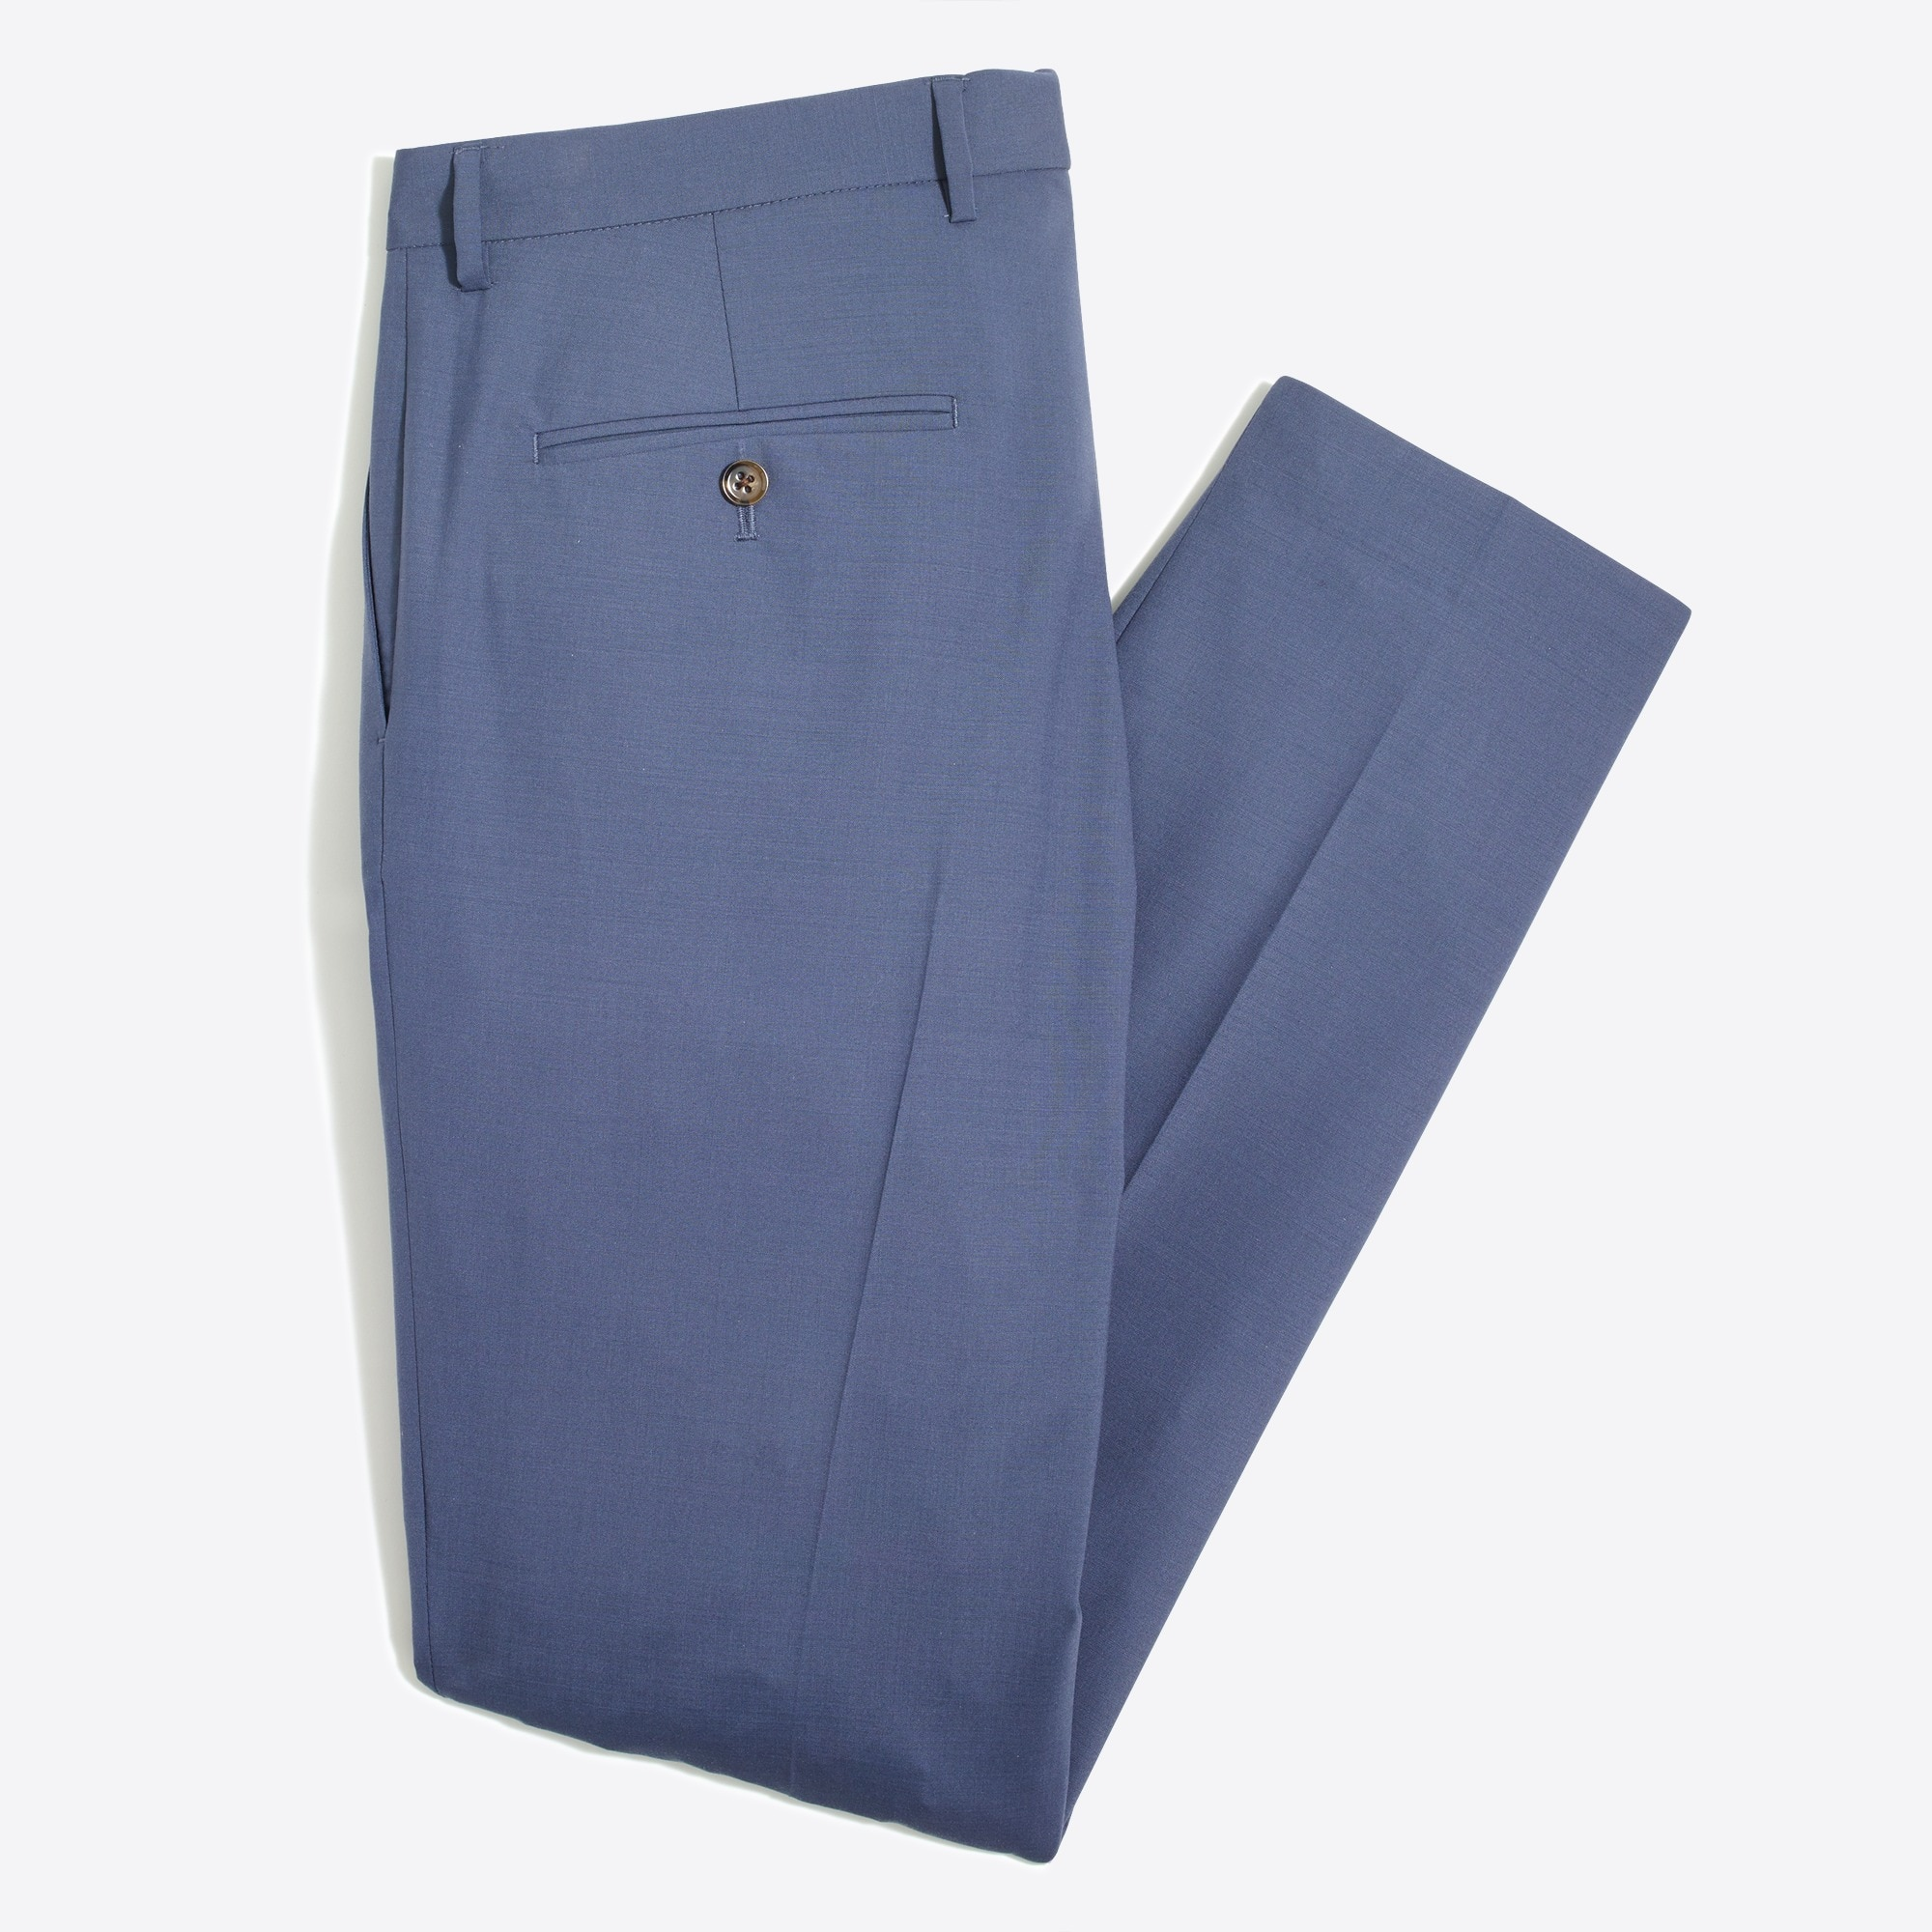 Image 2 for Slim-fit Thompson suit pant in lightweight flex wool